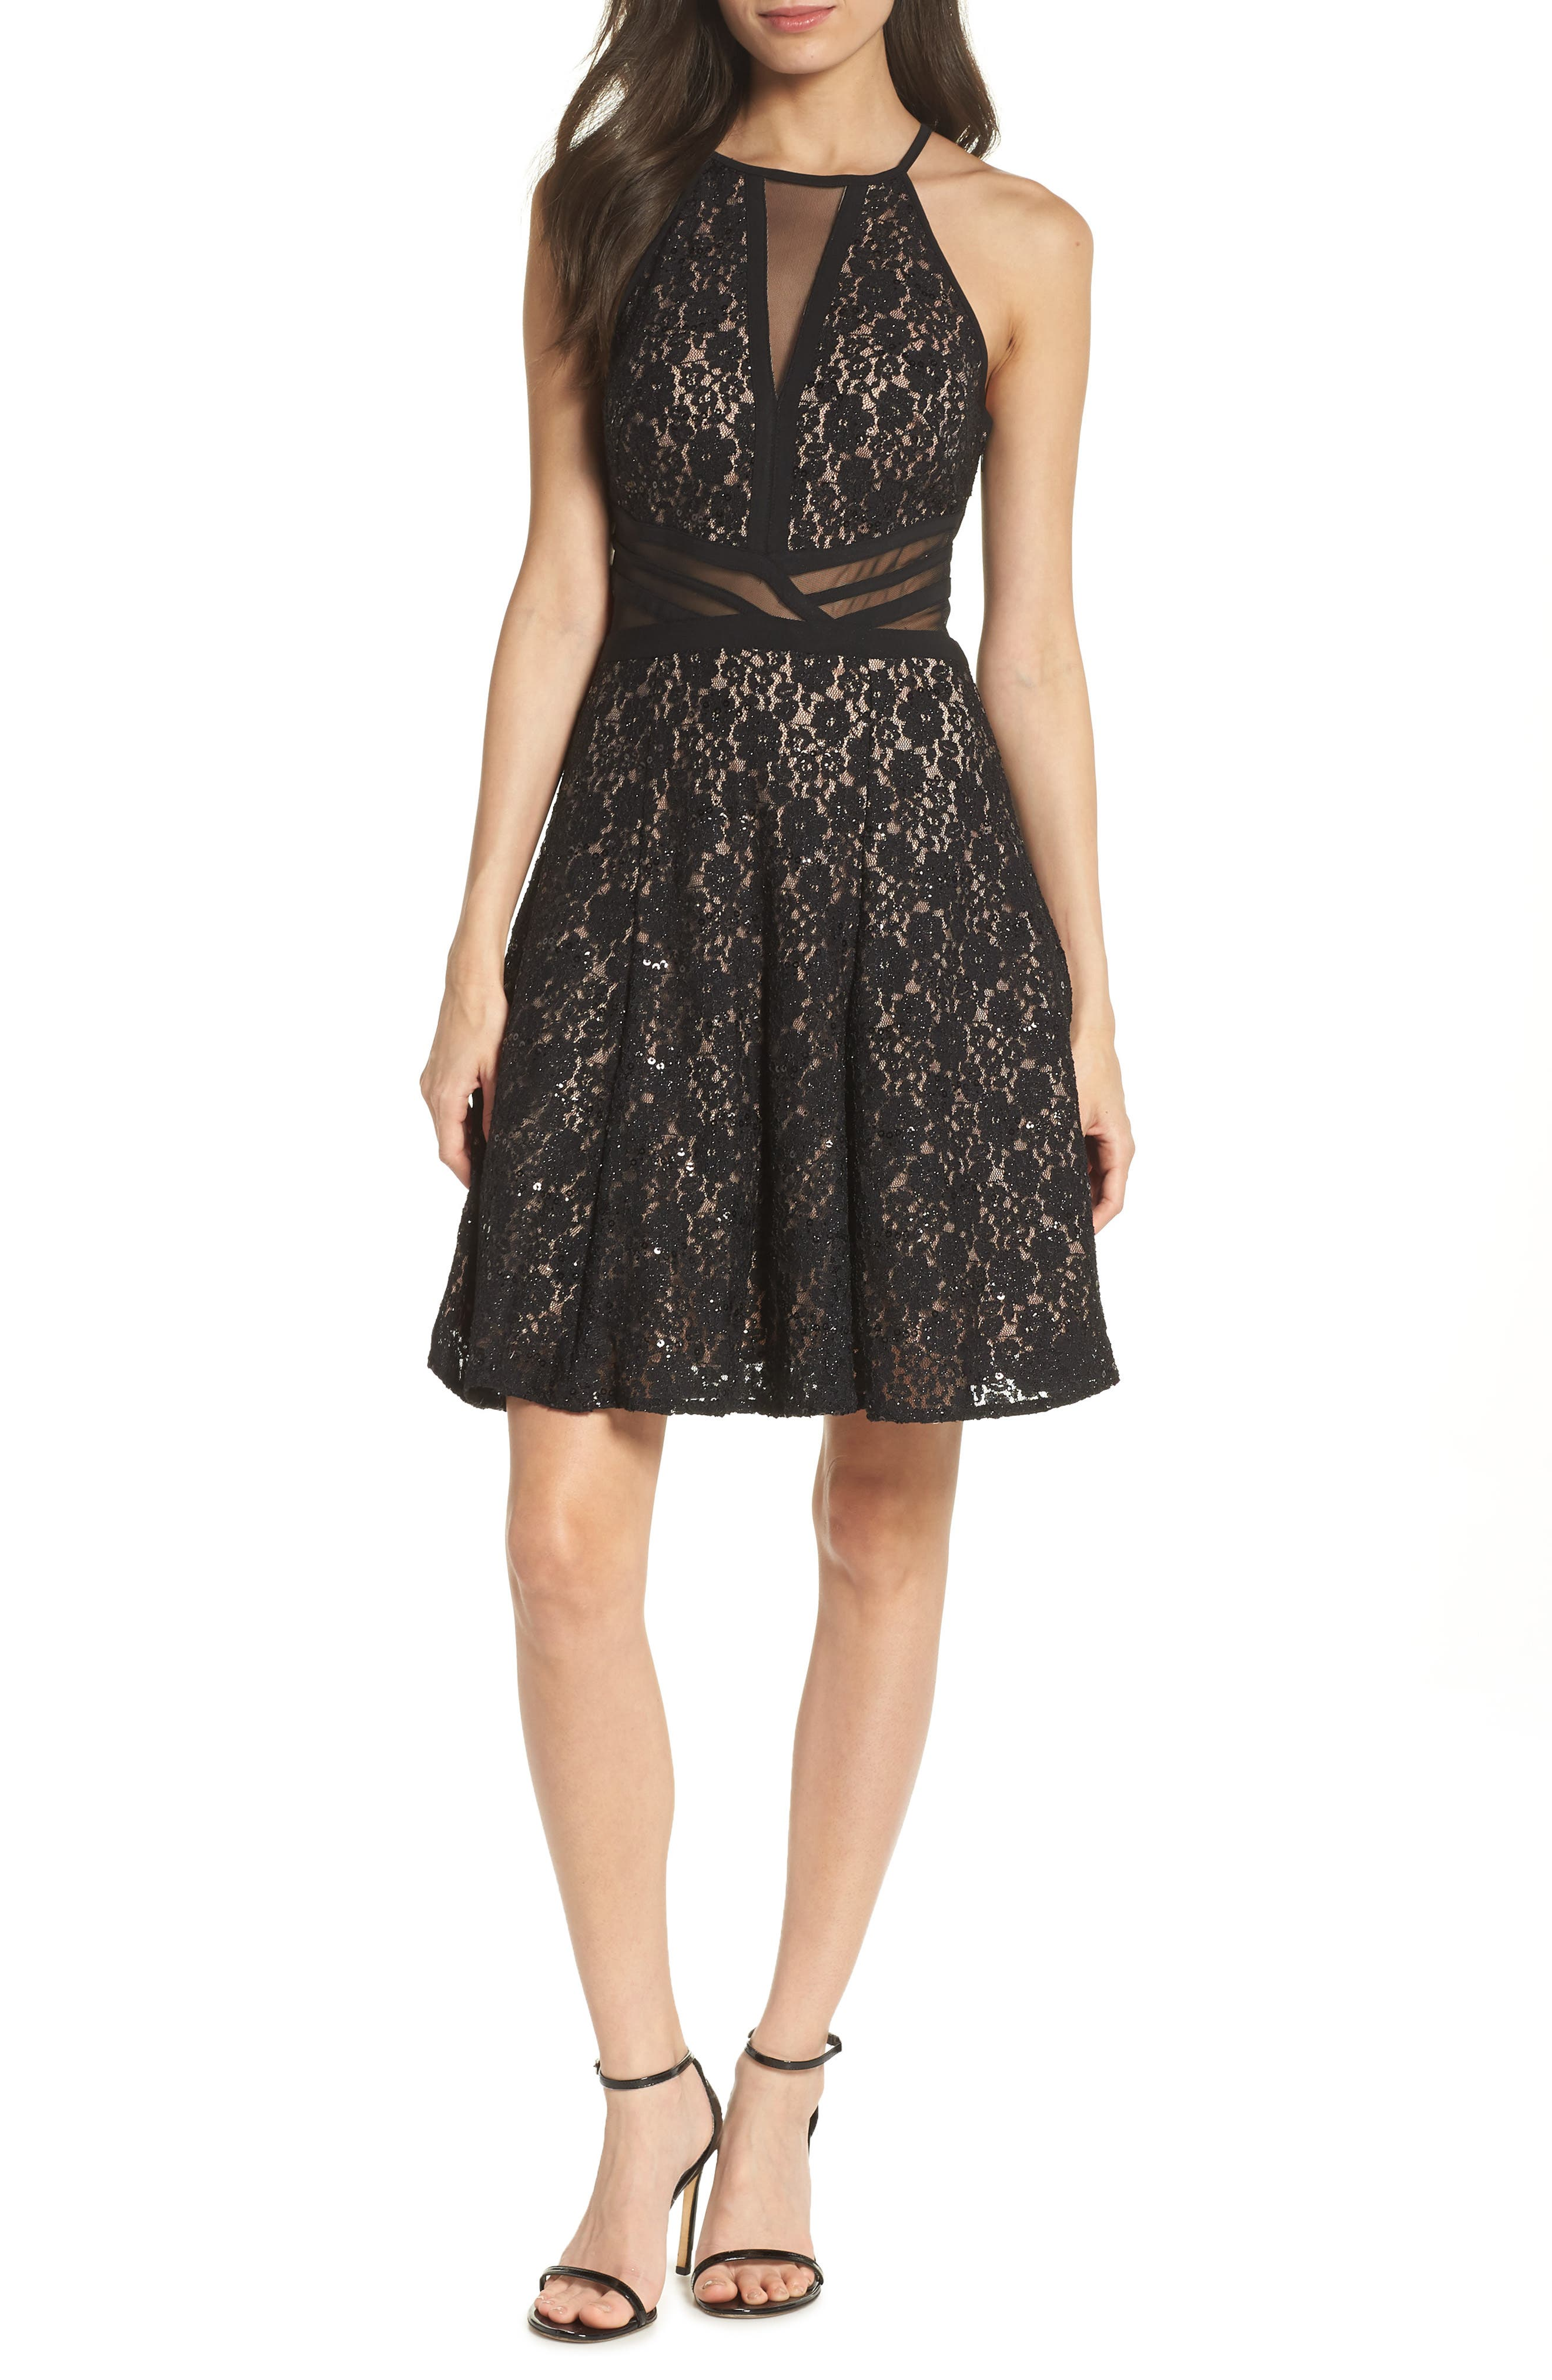 Morgan & Co. Sheer Inset Lace Fit & Flare Dress, /12 - Black